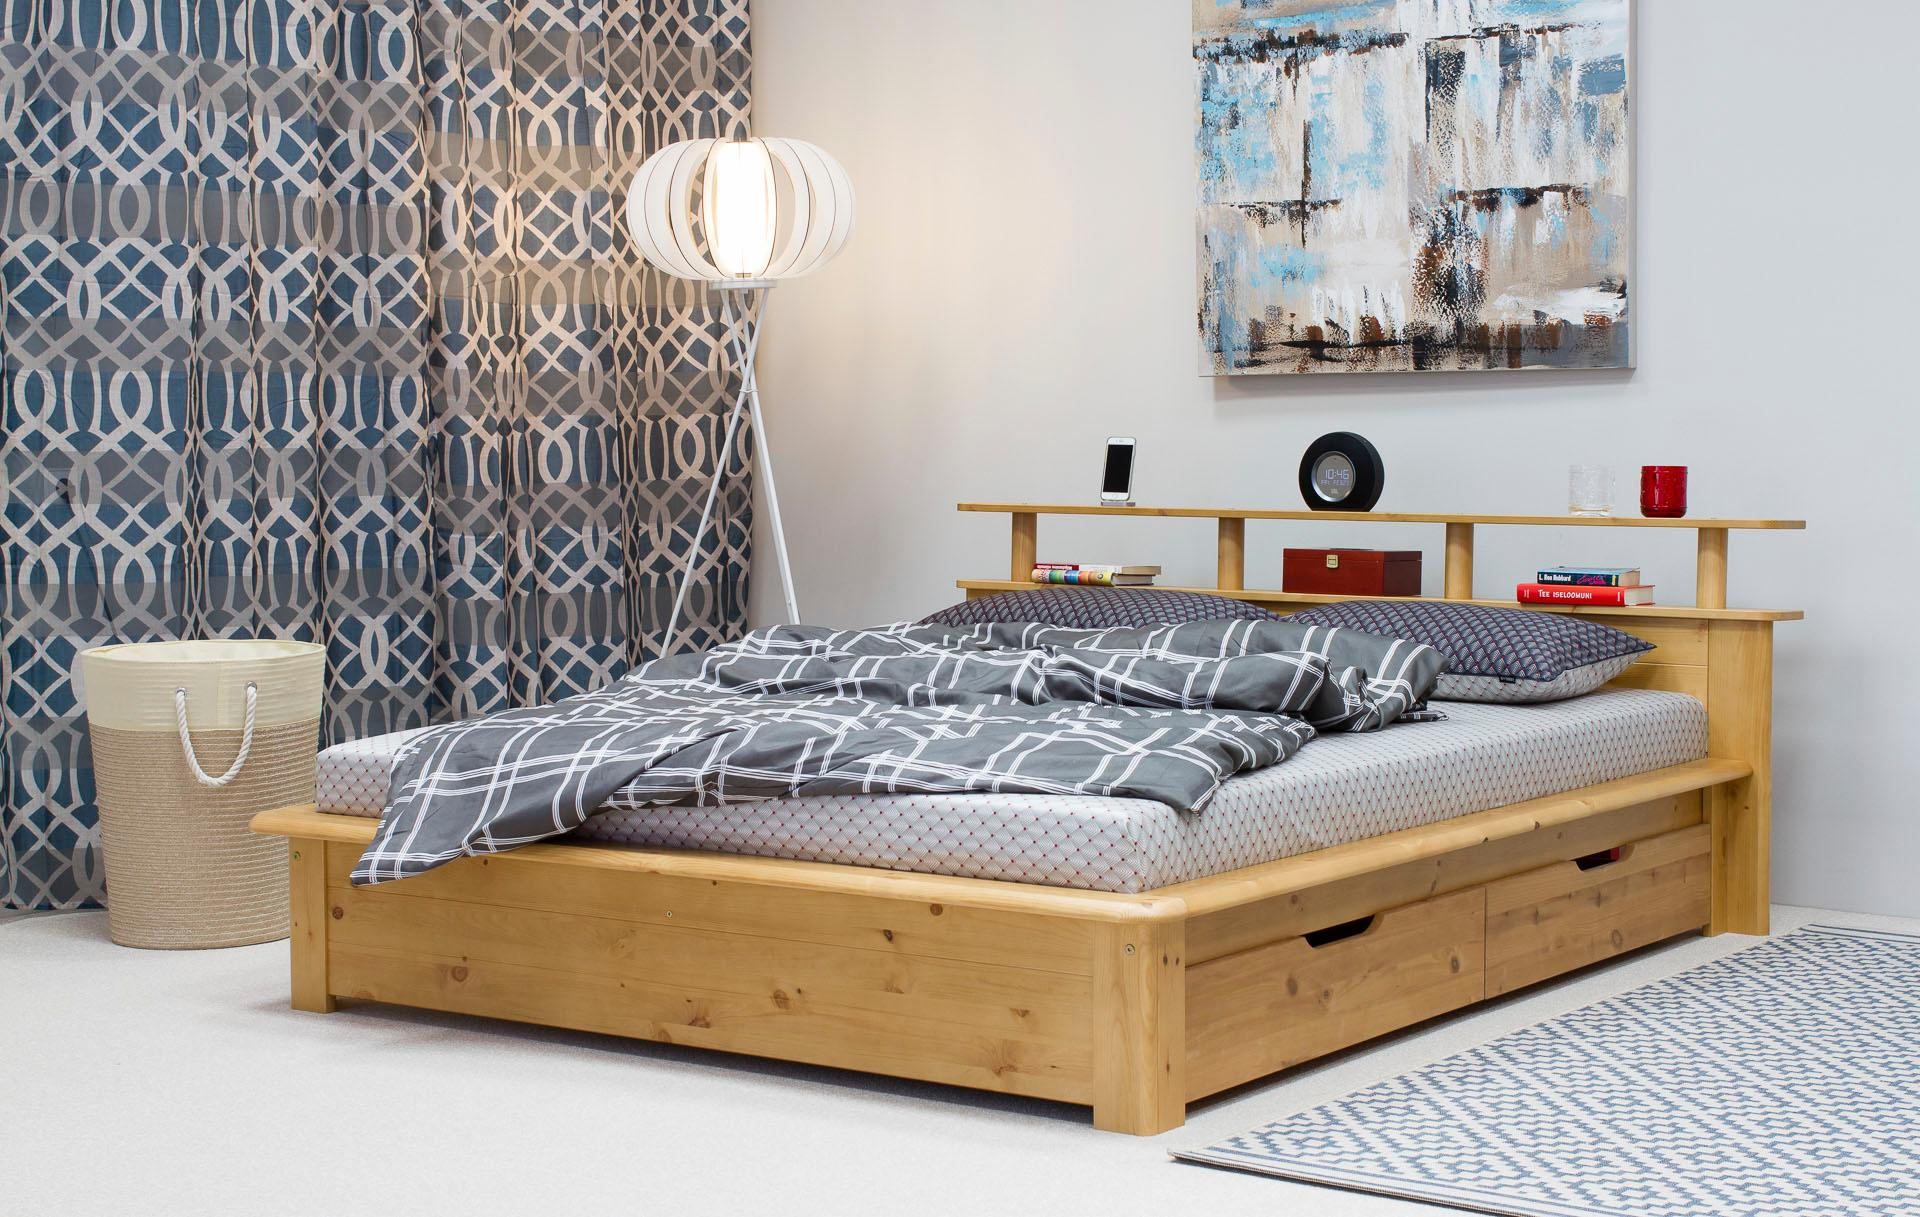 Home affaire Funktionsbett Finja | Schlafzimmer > Betten > Funktionsbetten | home affaire